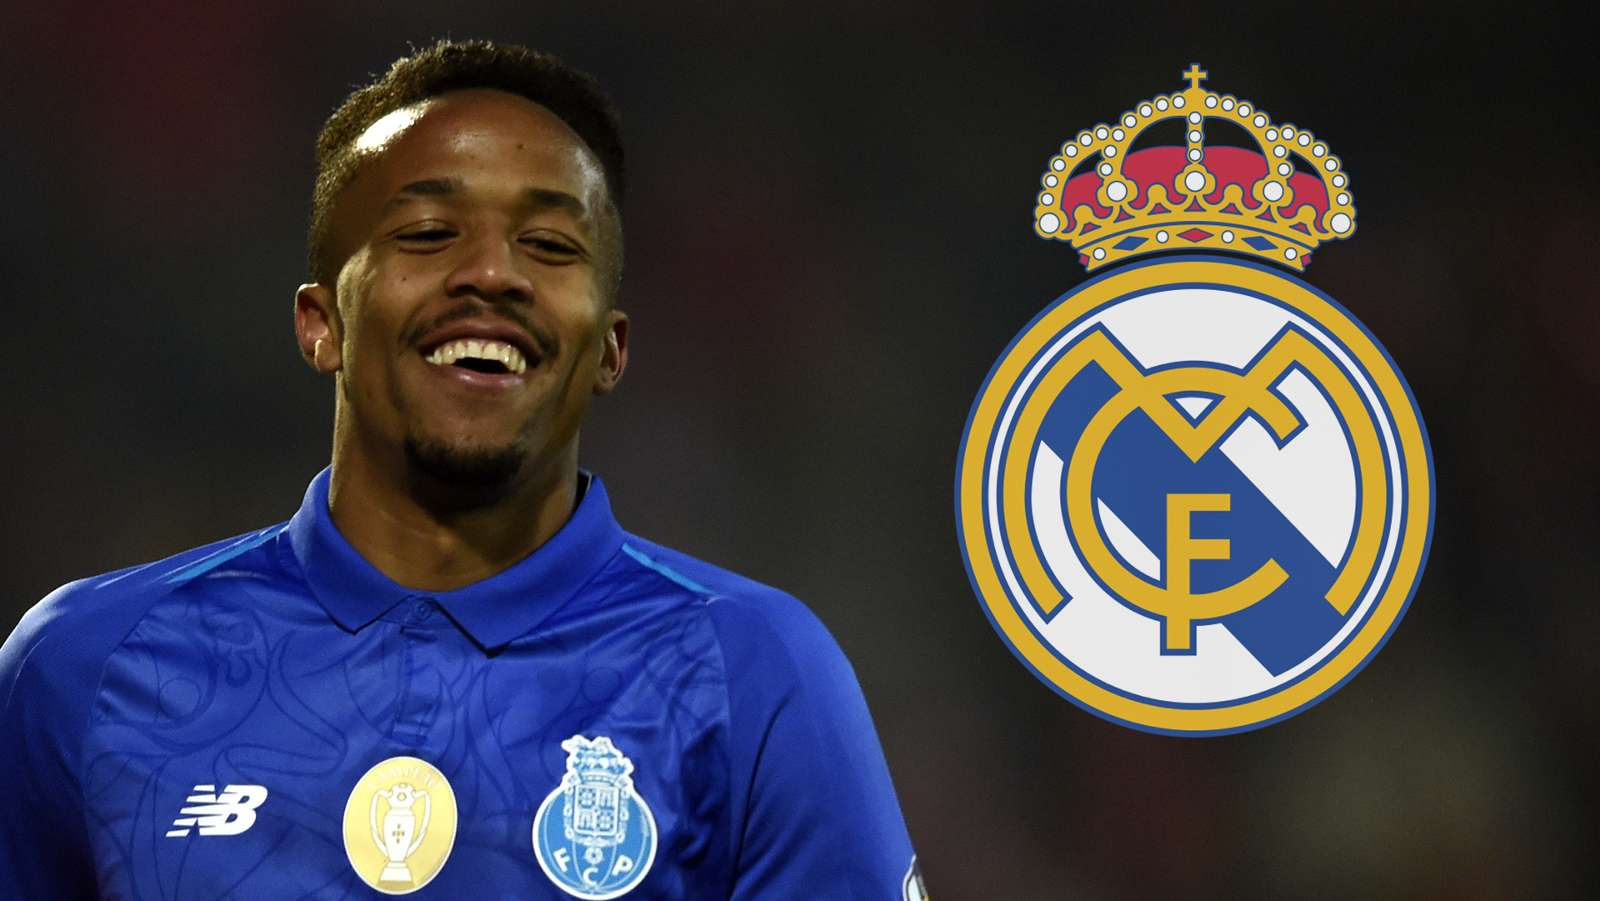 La Liga 2018/19 Discussion - Page 37 Eder-militao-real-madrid_edsoehmy3qx313tgmtxbsdp4c